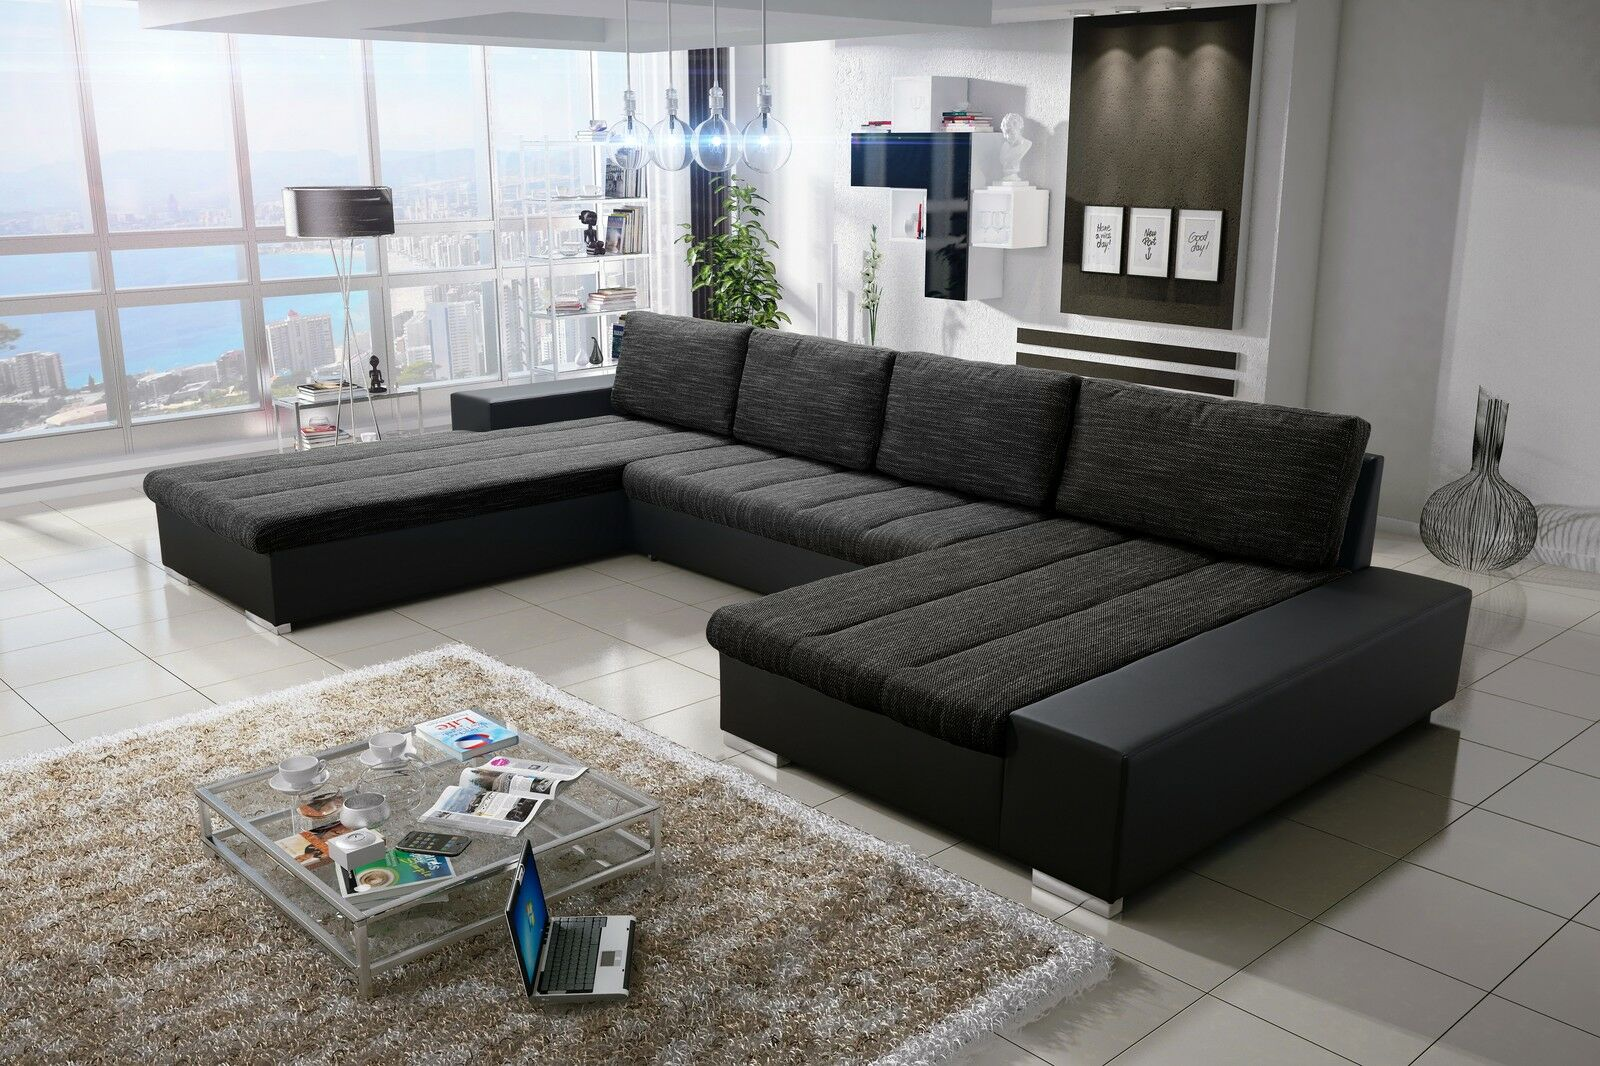 Sofa couchgarnitur couch sofagarnitur verona 3 u for Sofa wohnlandschaft